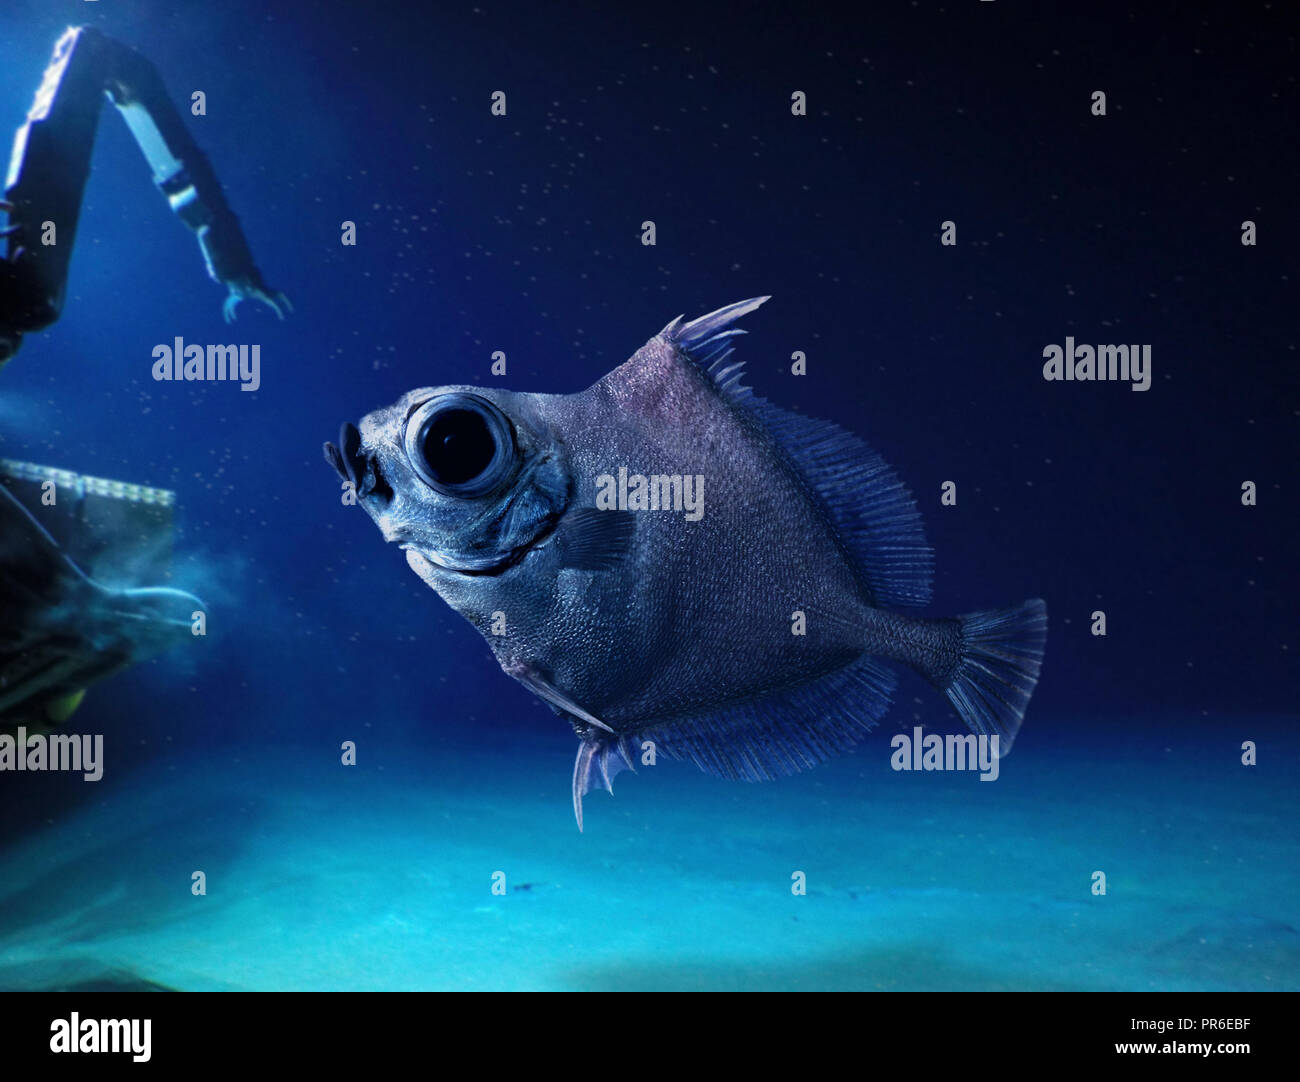 Neocyttus helgae, False boarfish, swimming close to submersible vehicle. Deep sea fish that lives between 900 and 1800 m deep close to seamounts. - Stock Image